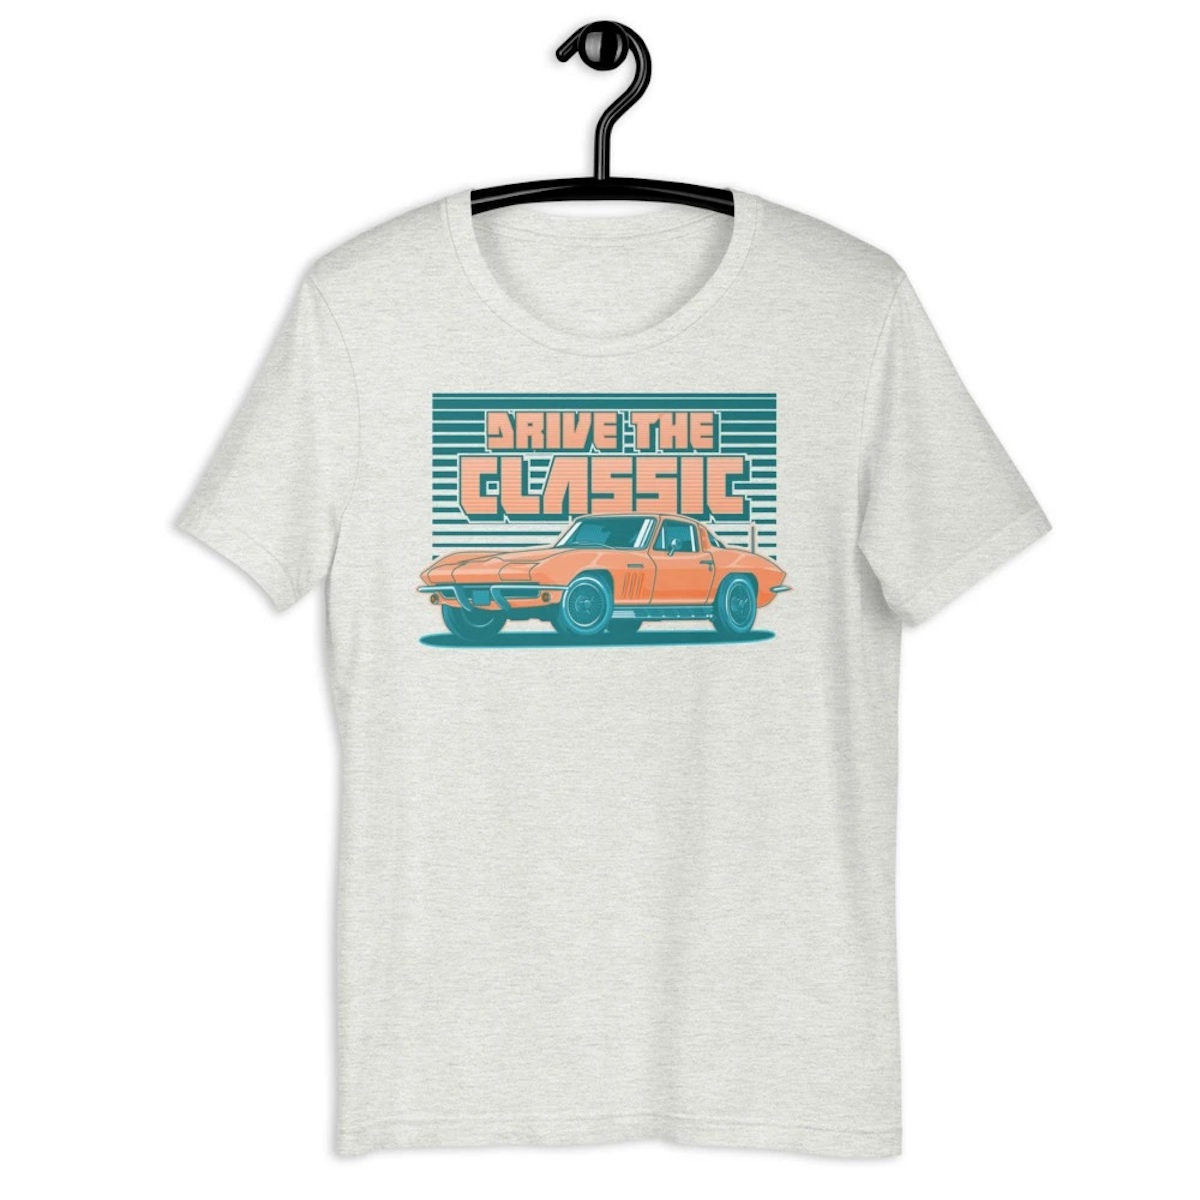 """The 1963 C2 Corvette """"Drive the Classic"""" shirt, available on 100MPH for $29.95 USD"""